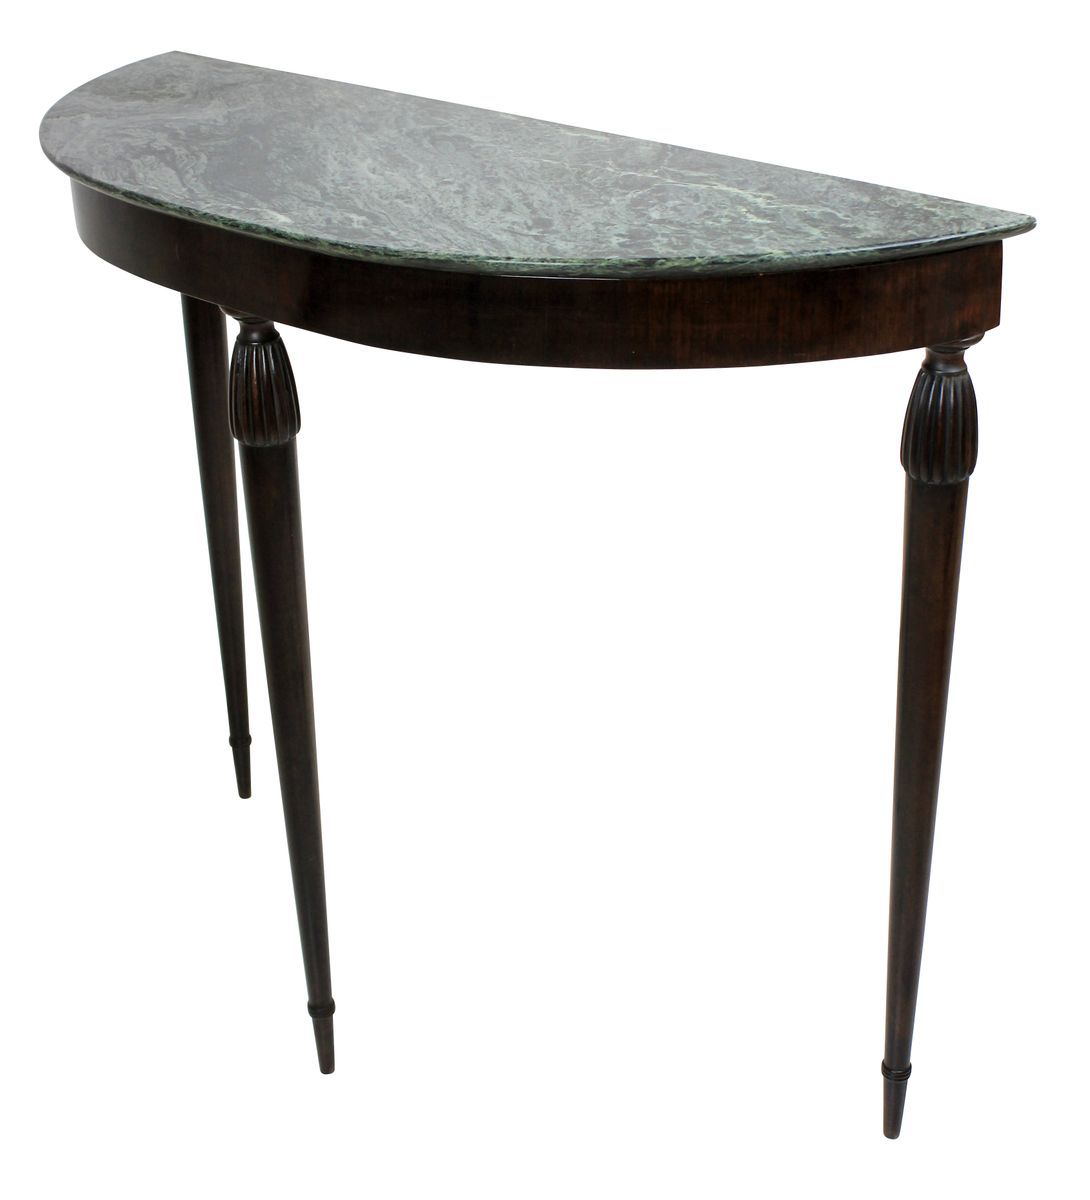 Italian demi lune console table 1950s for sale at pamono - Table cuisine demi lune ...